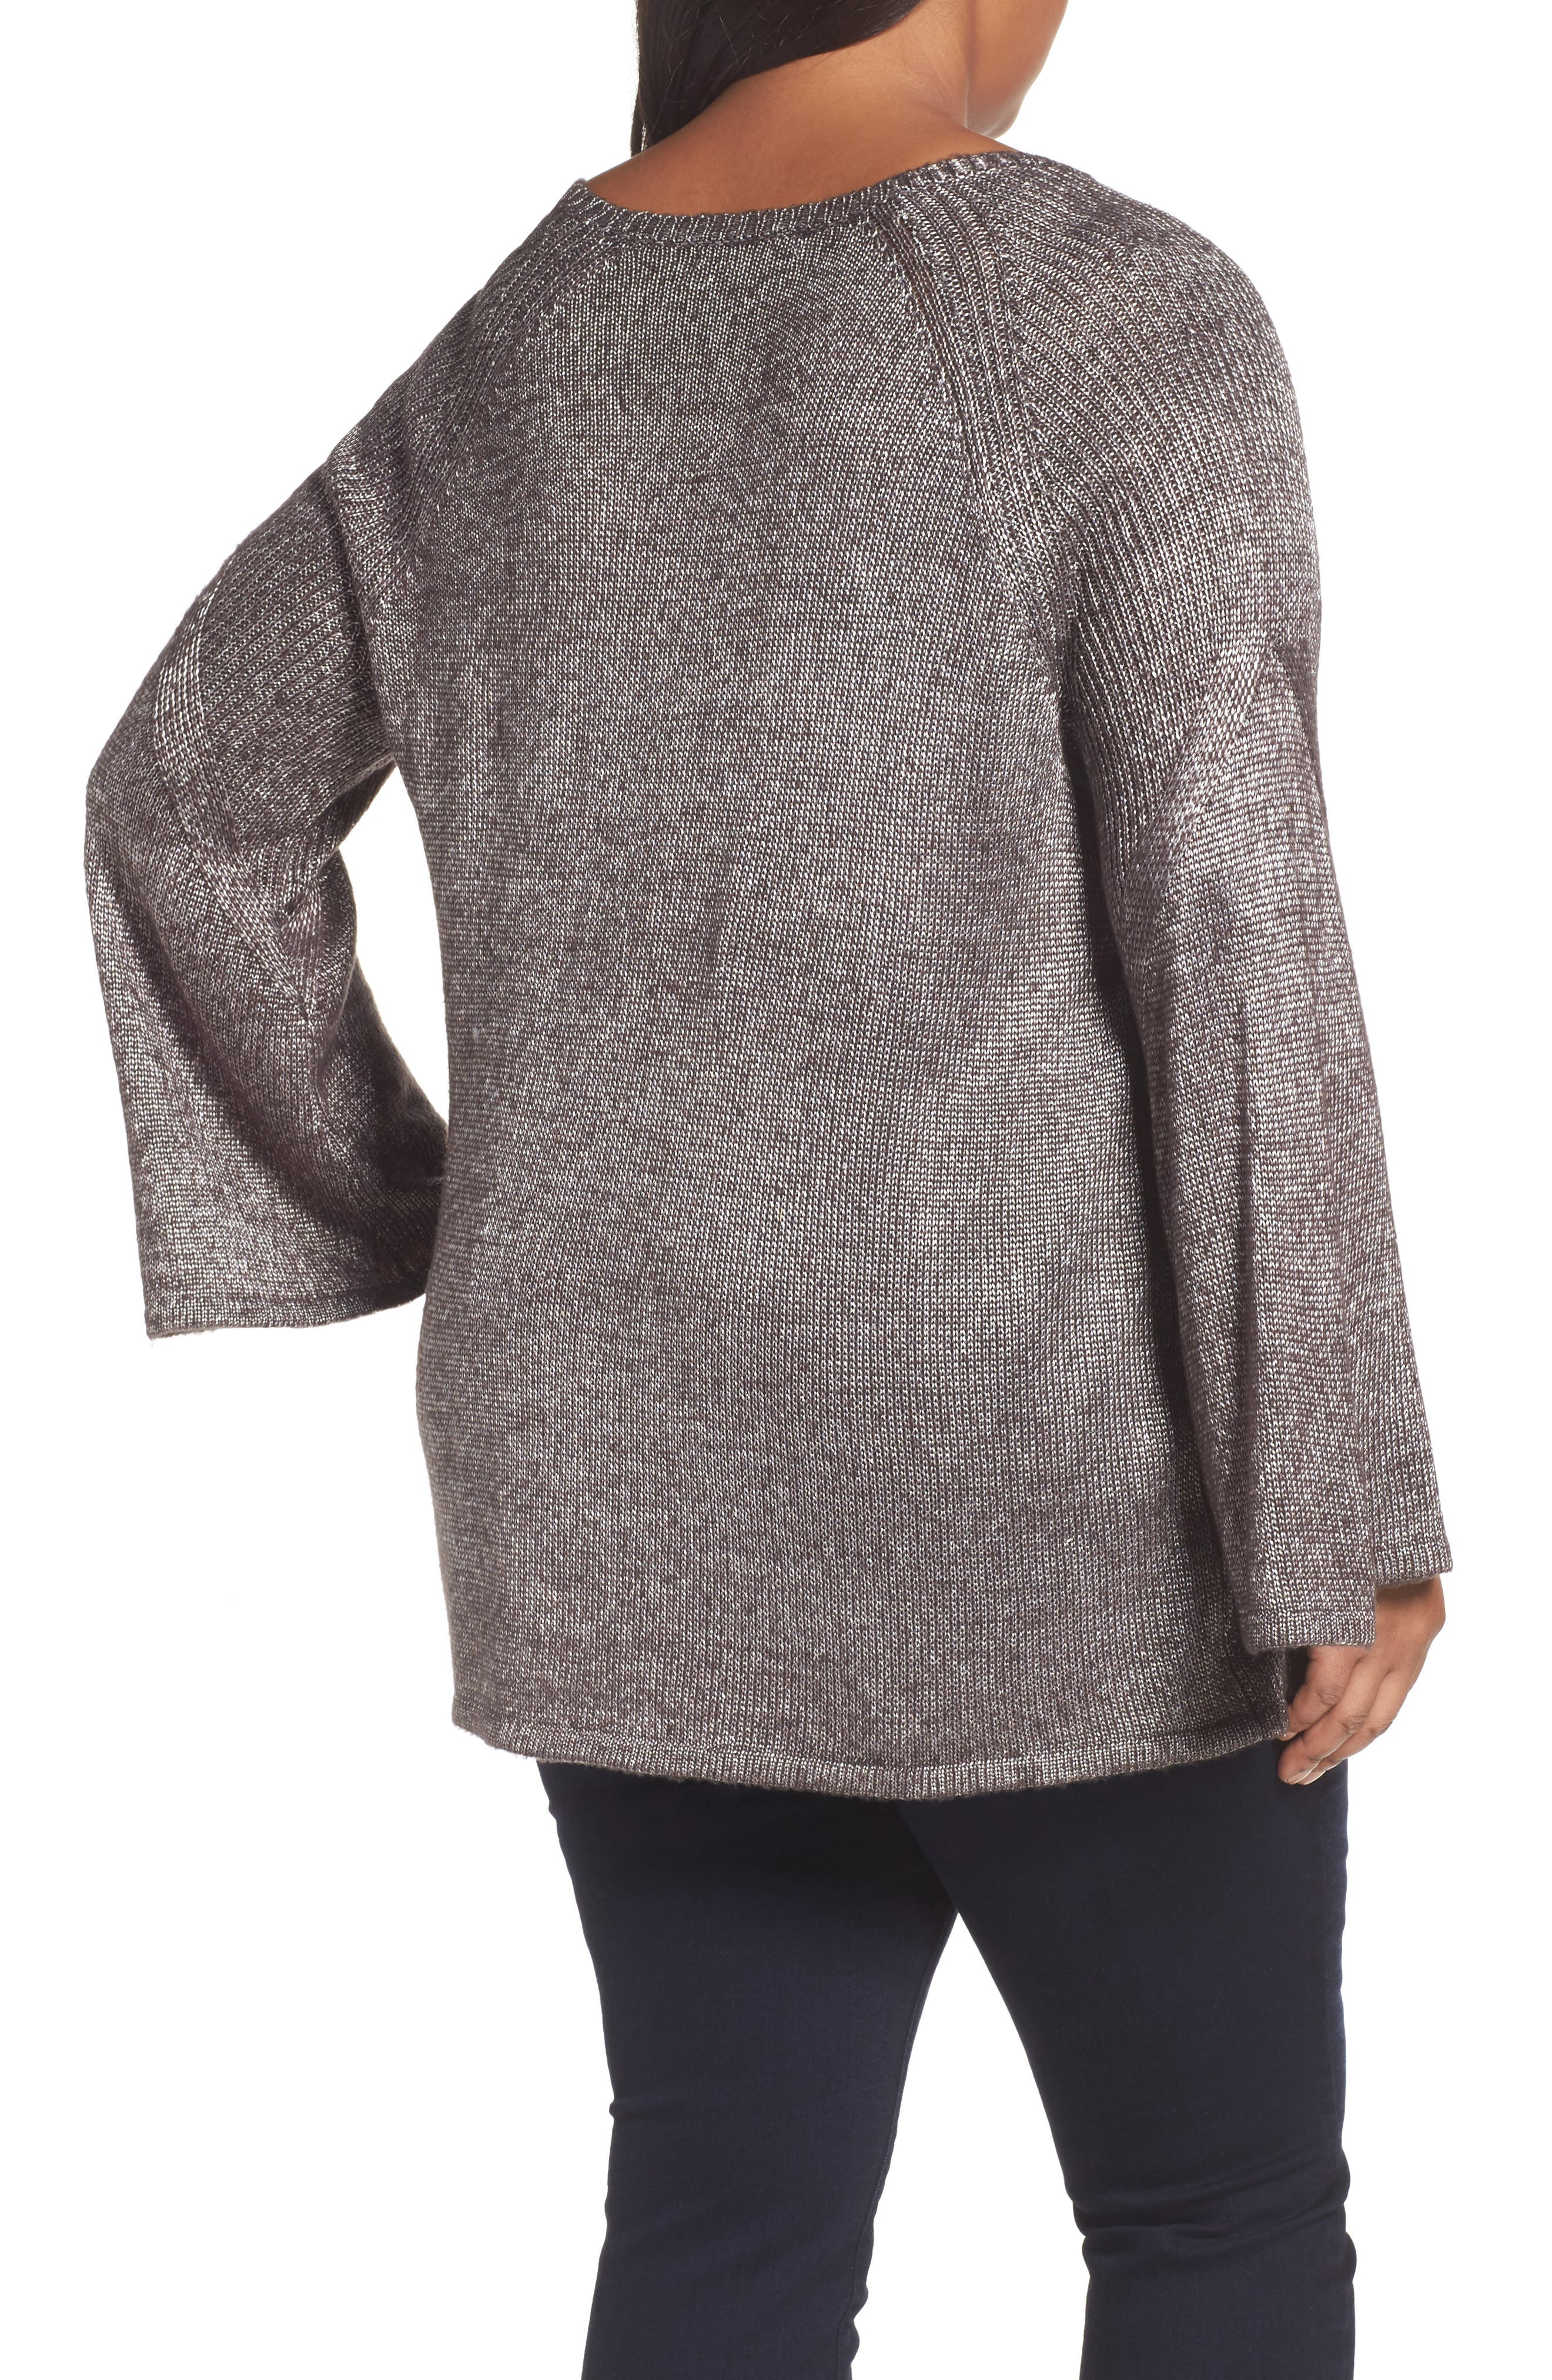 Bell Sleeve Sweater,                             Alternate thumbnail 2, color,                             Black- Silver Metallic